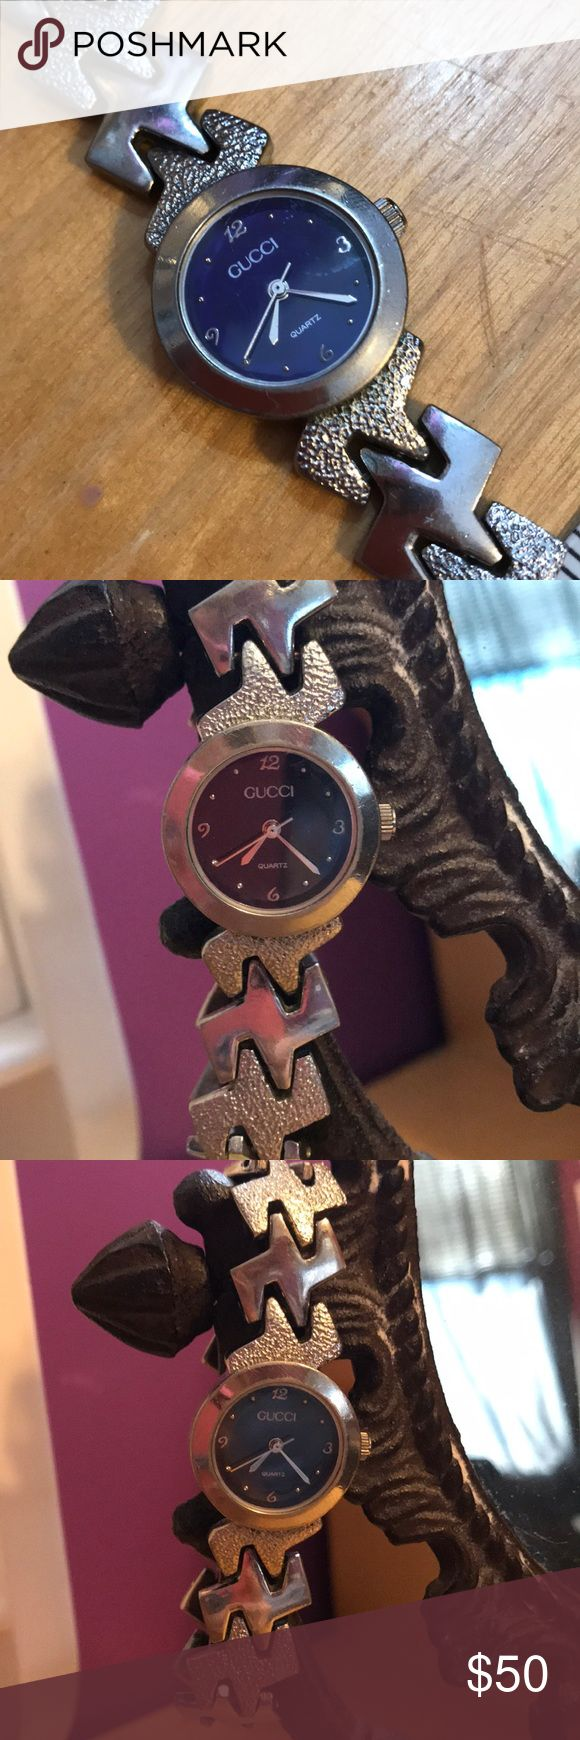 Gucci mood watch Gucci mood watch, silver metal linked wrist band. The center changes color based on mood/temperature. NEEDS NEW BATTERY. I bought this at a second hand shop so I cannot guarantee authenticity. Any questions please comment below. Open to offers. Gucci Accessories Watches